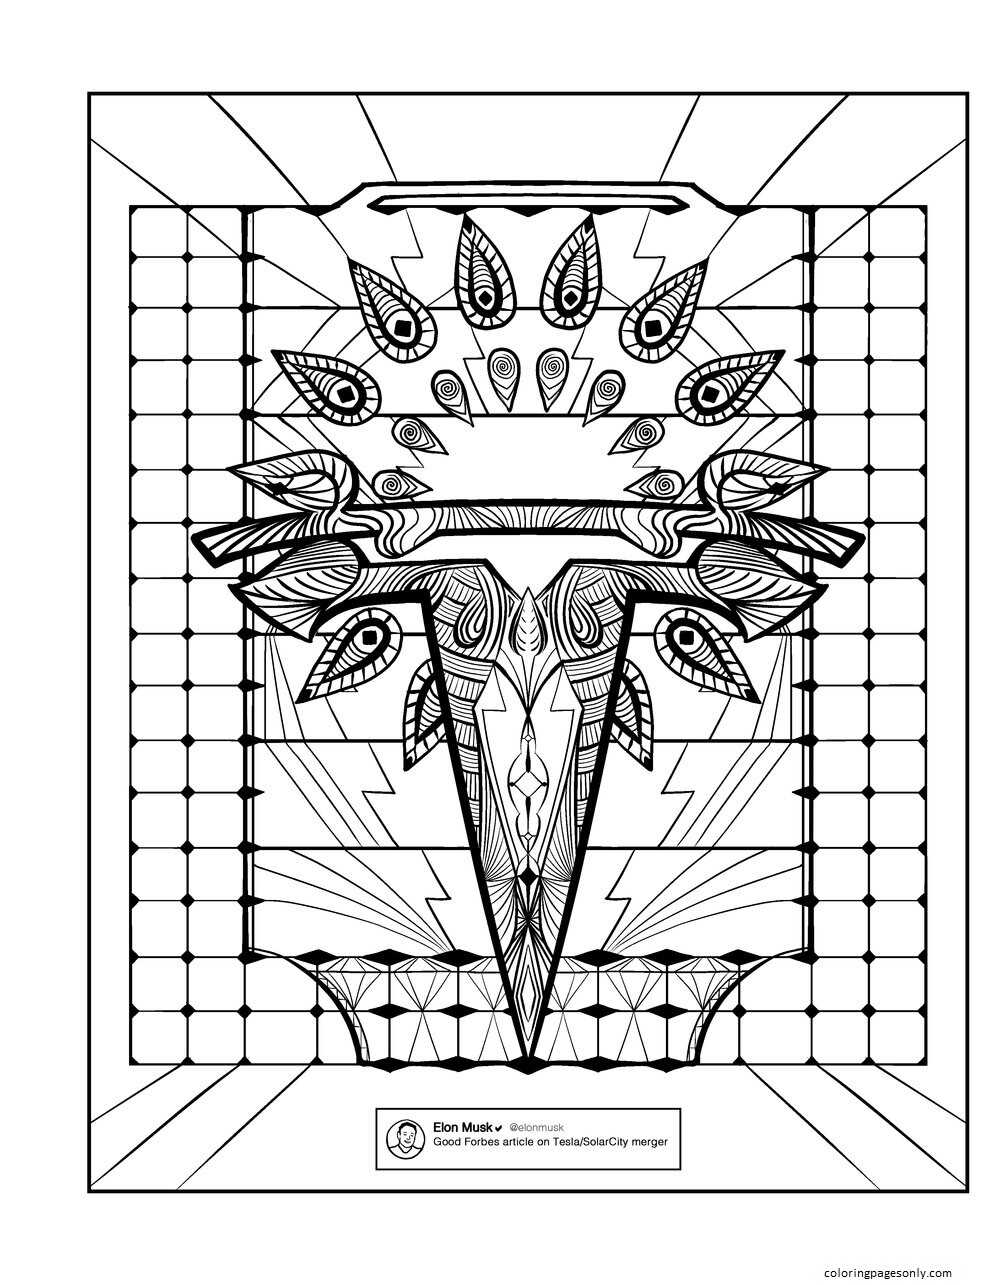 Inspiration of Elon Musk 3 Coloring Page